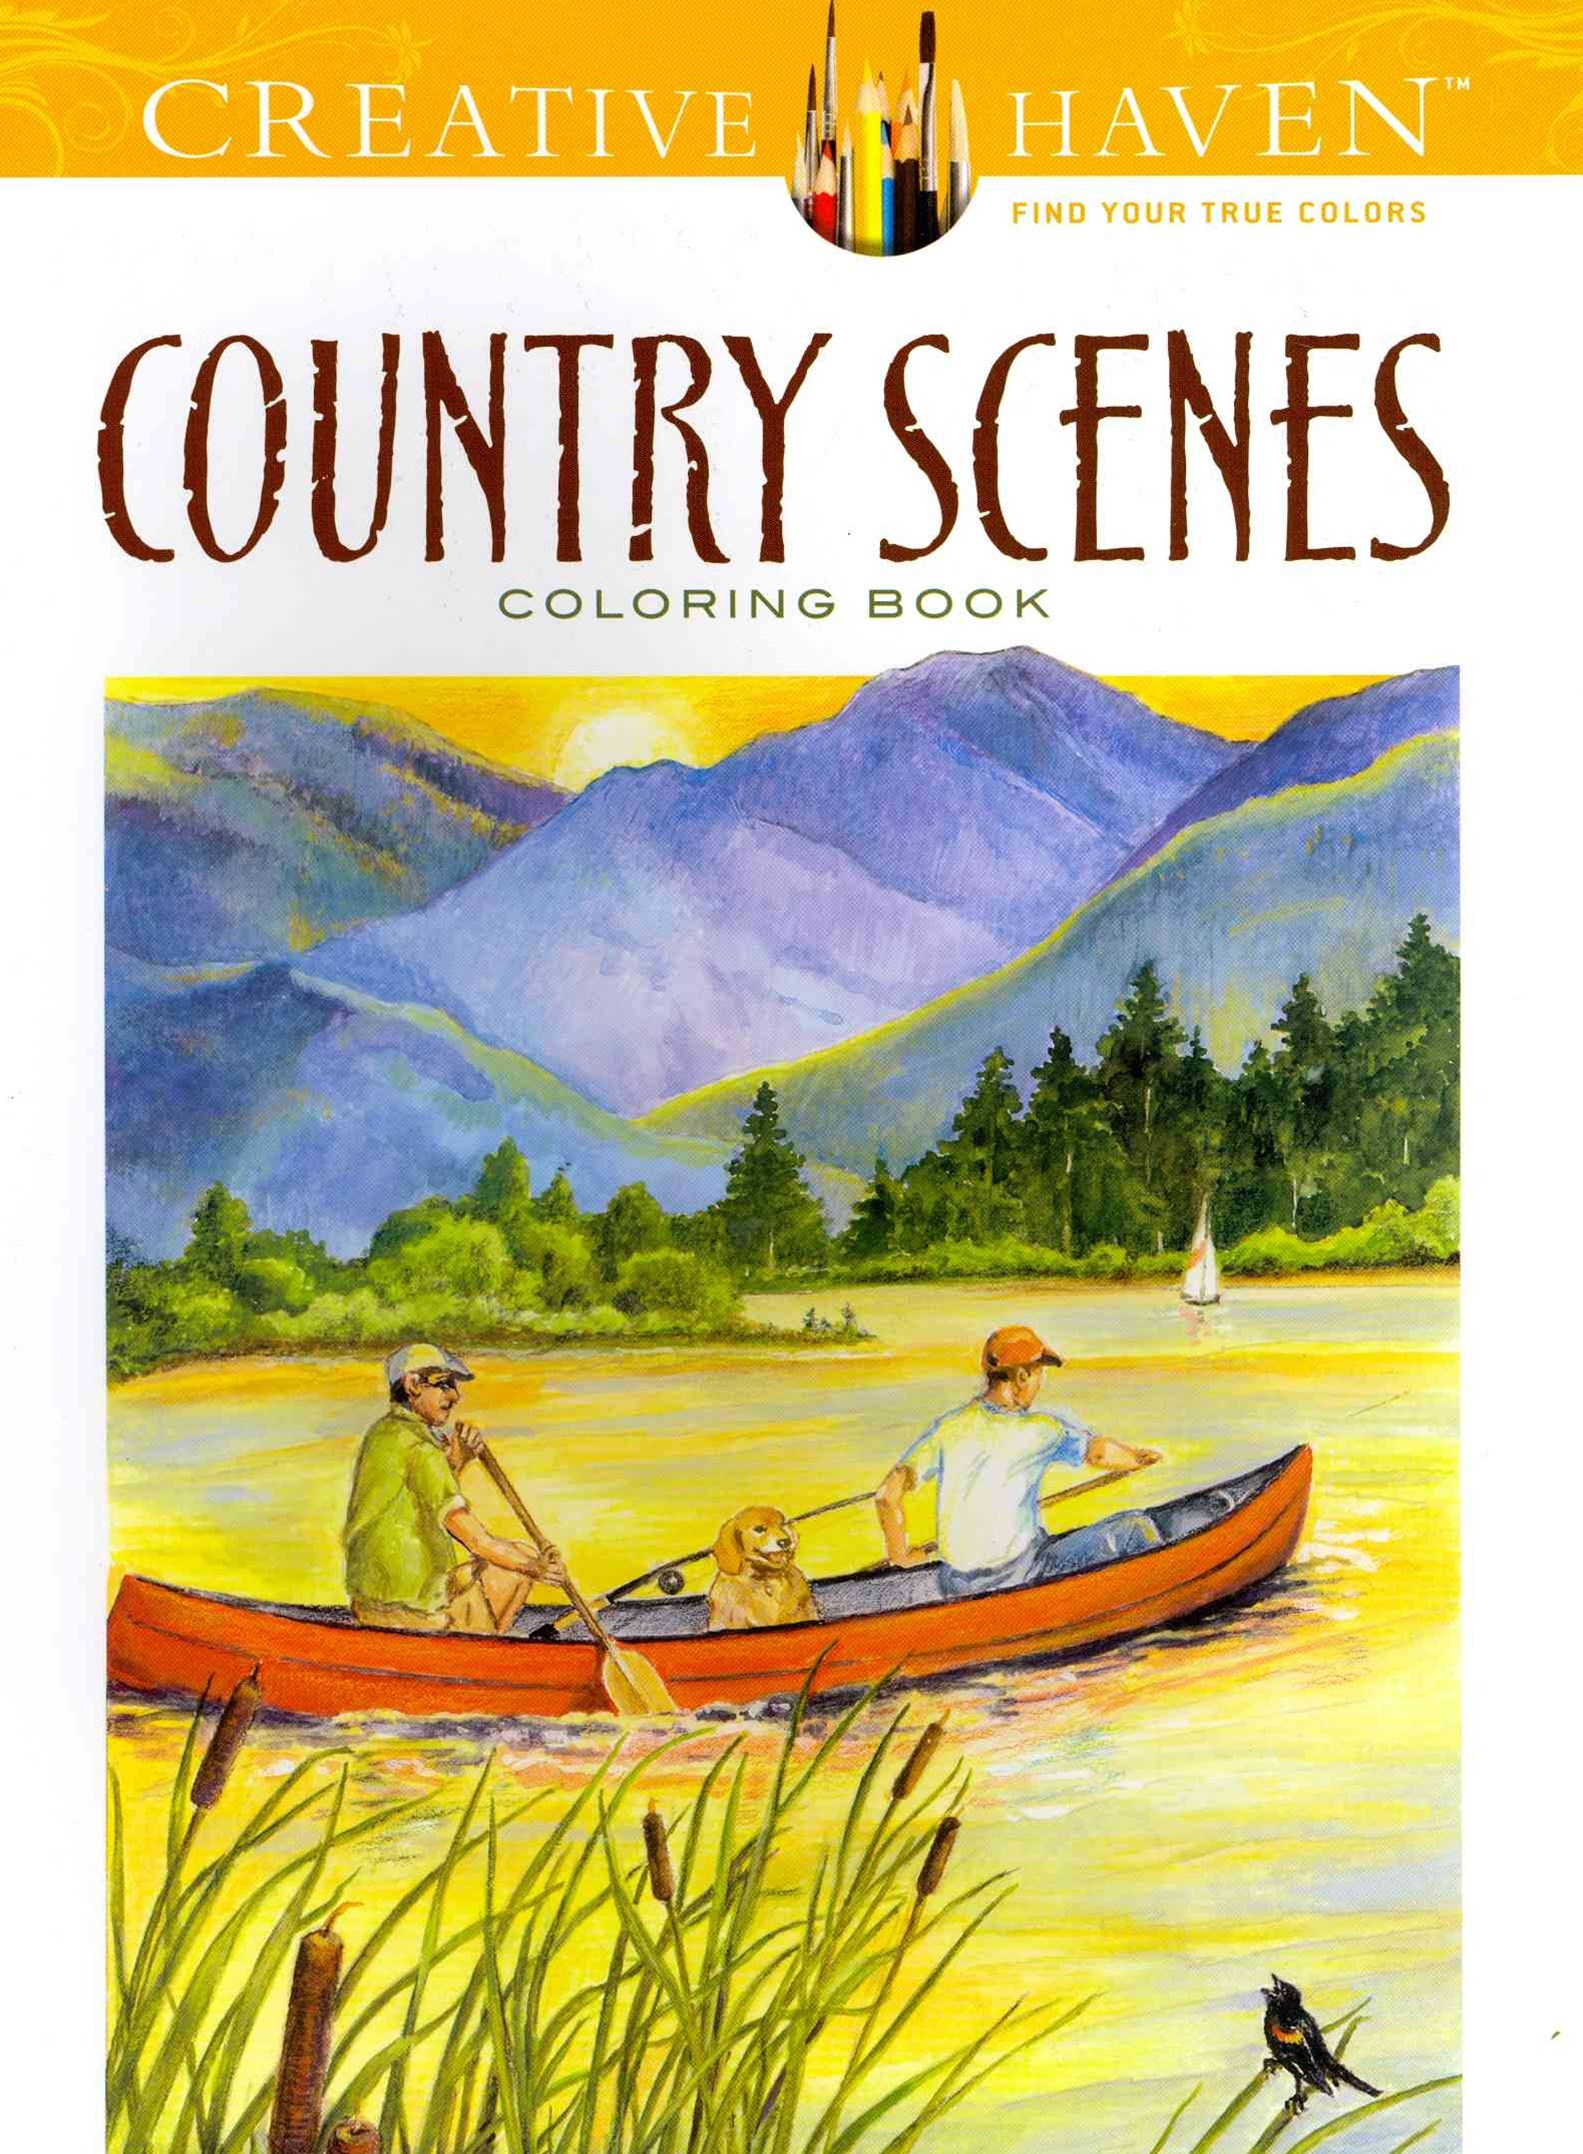 Creative Haven Country Scenes Coloring Book